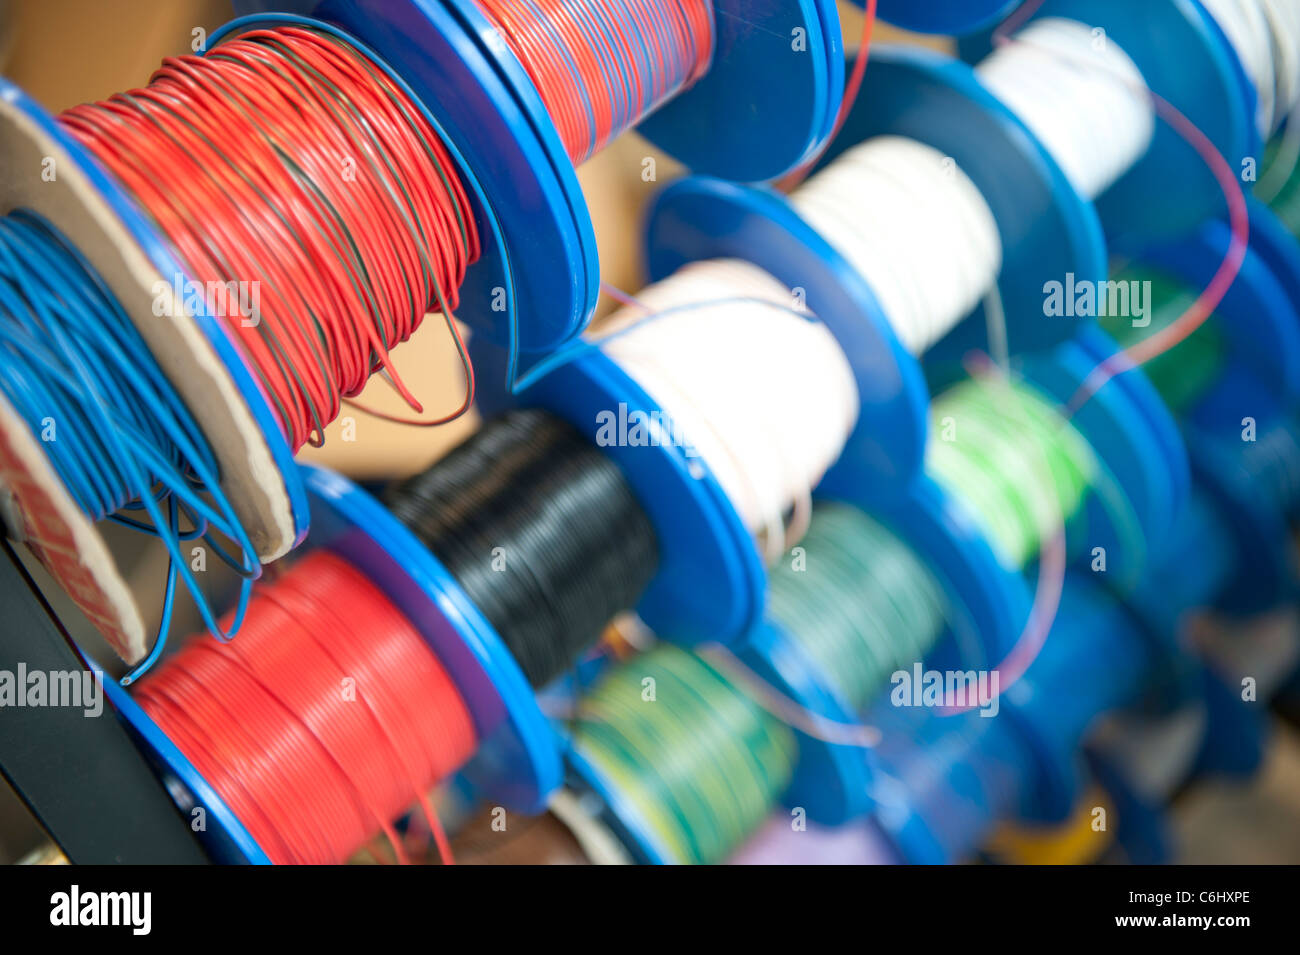 hight resolution of reels of cables